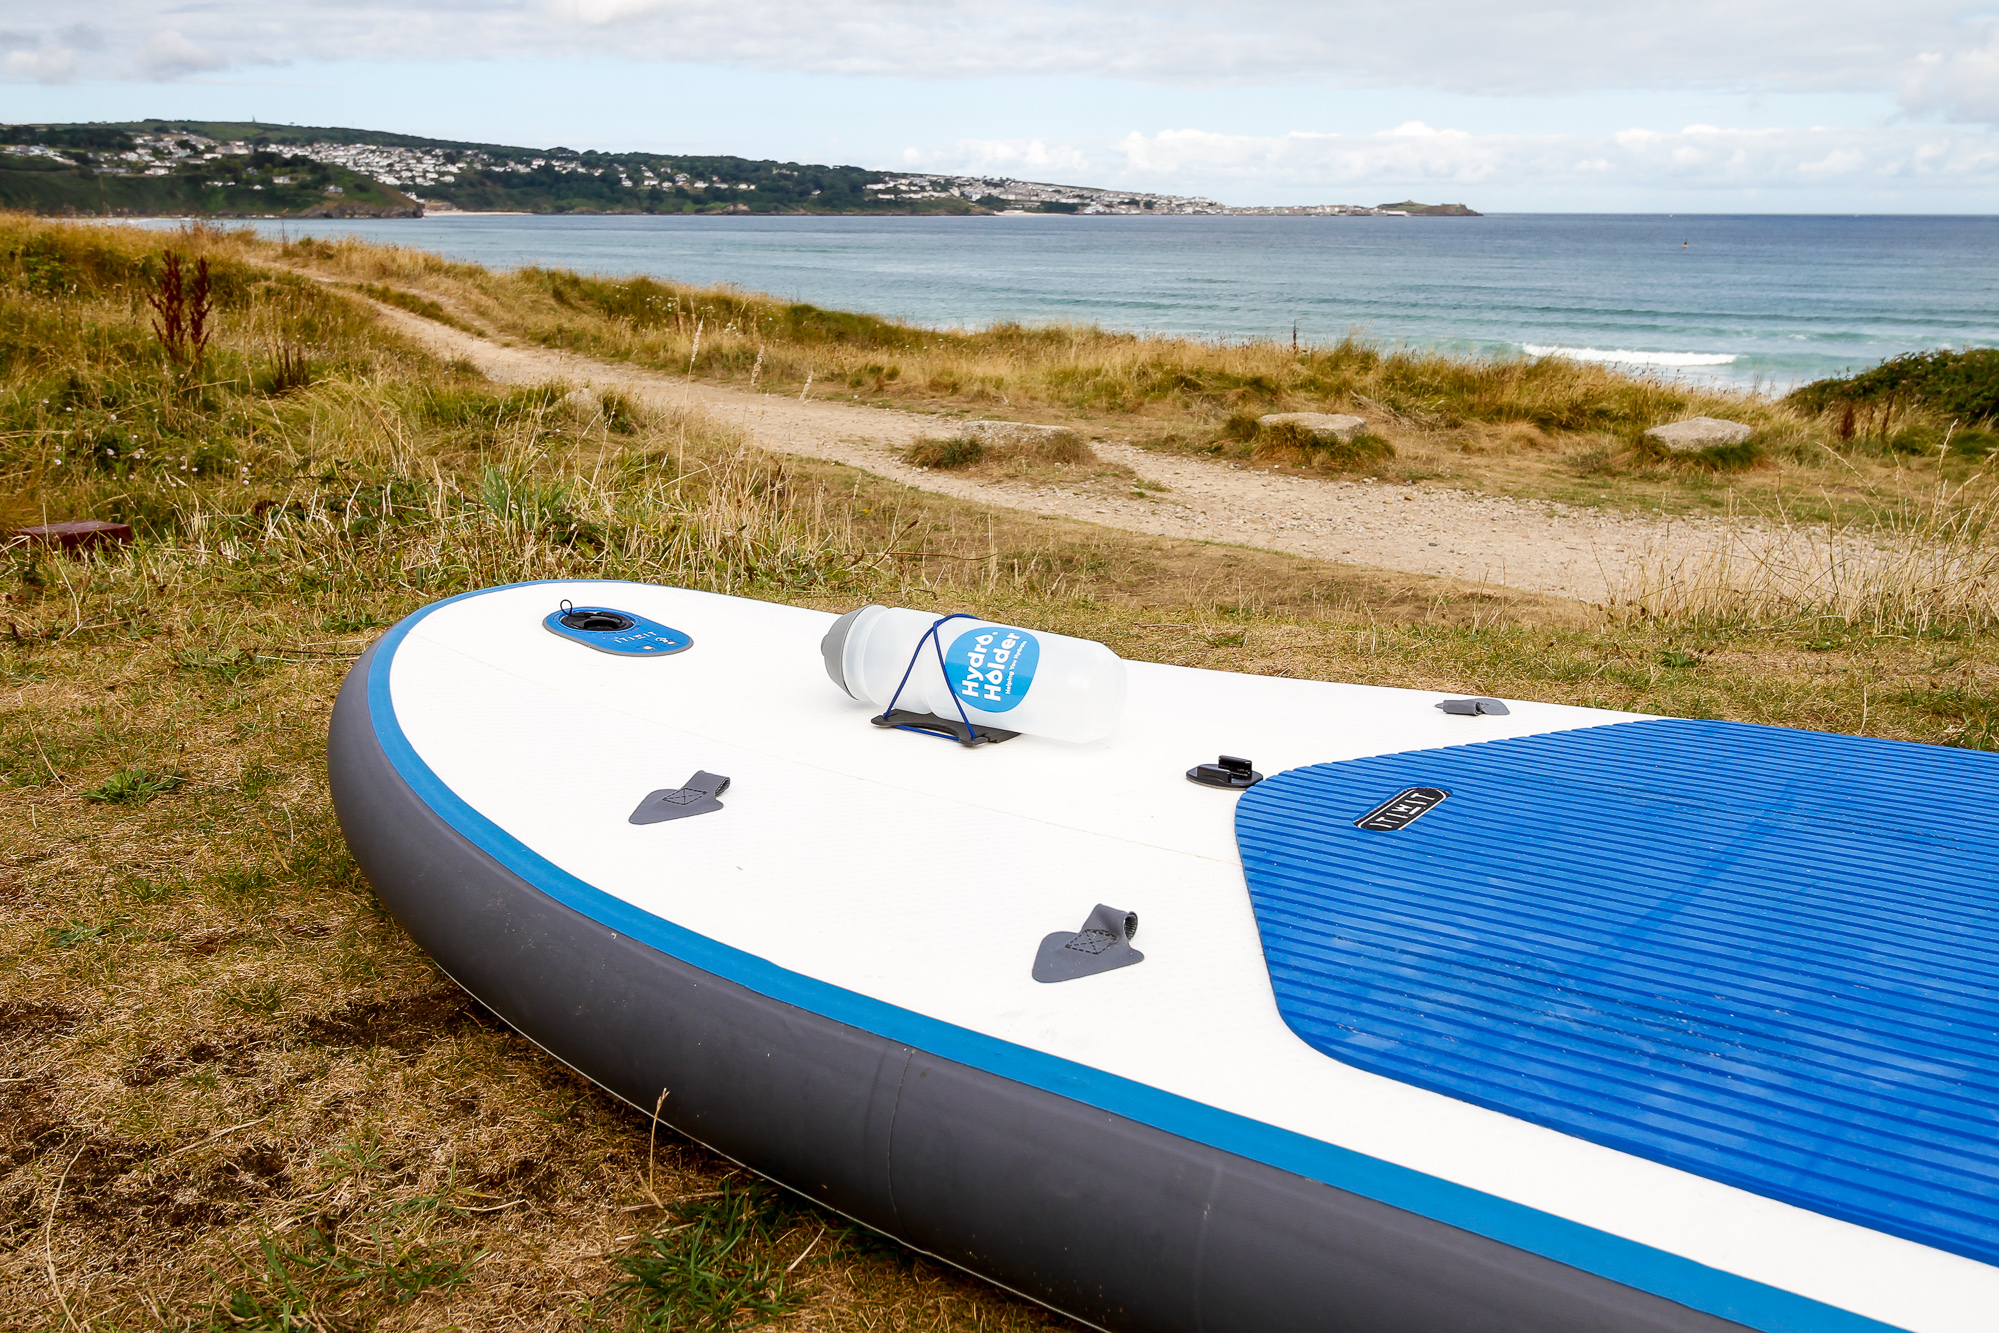 Hydro Holder Inflatable SUP